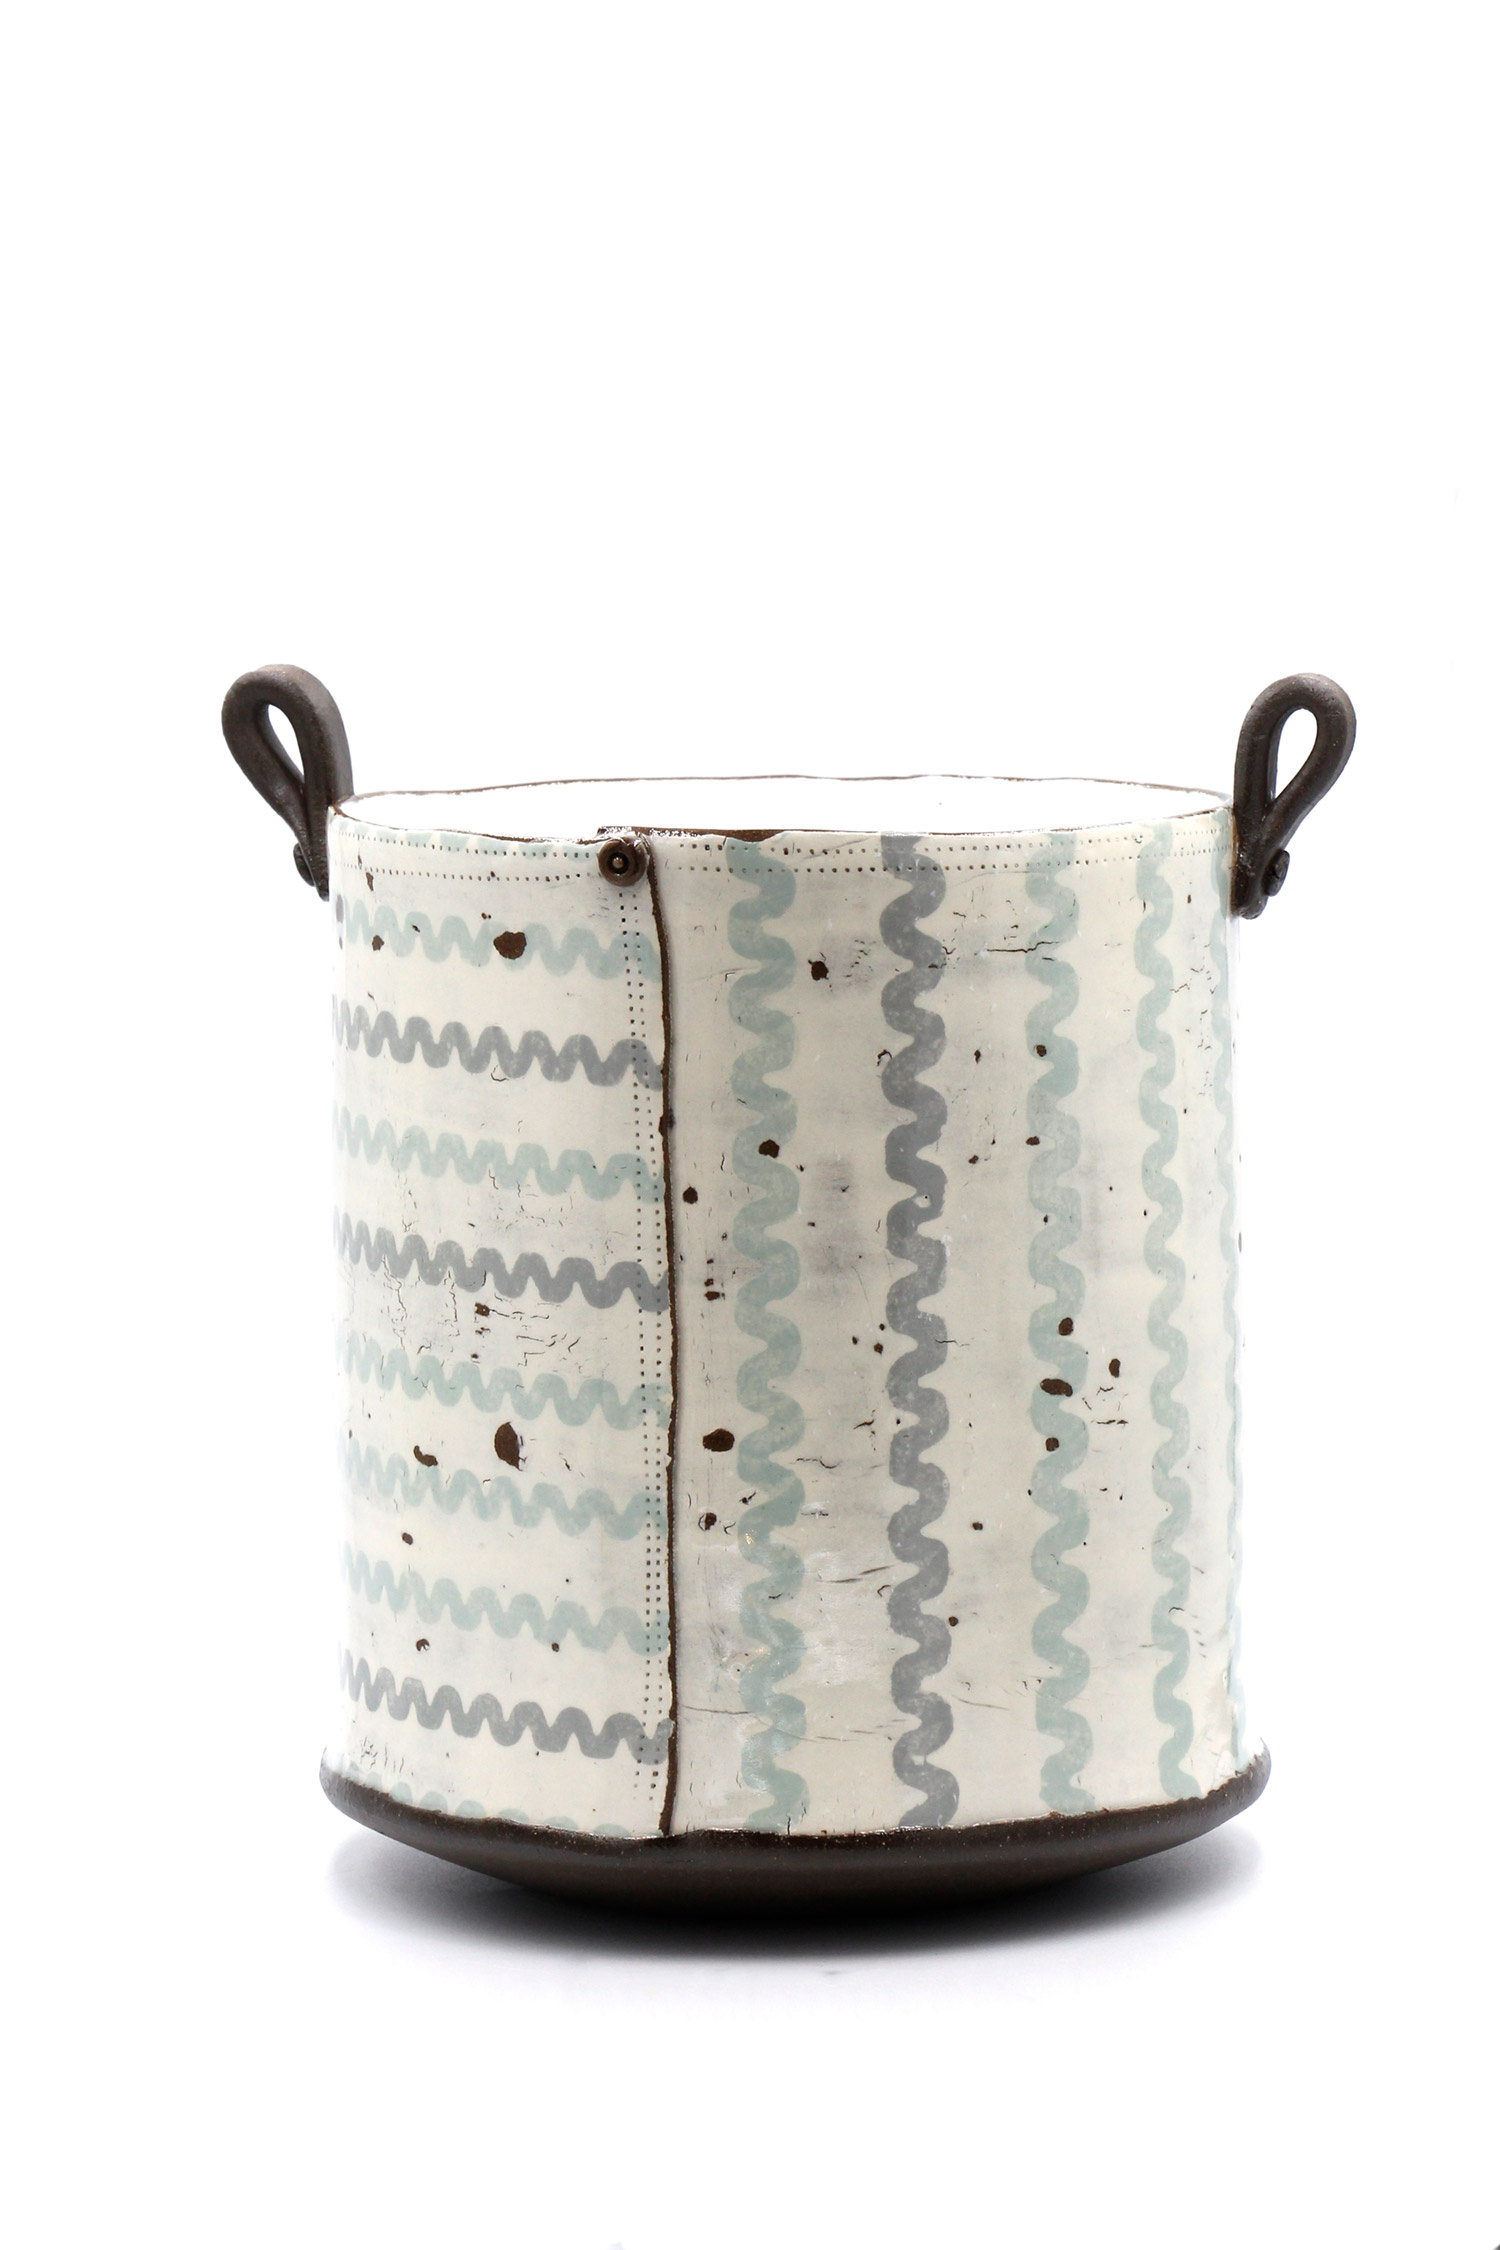 Pale Blue and Grey Ricrac Tall Tub Pot by Sam Walker